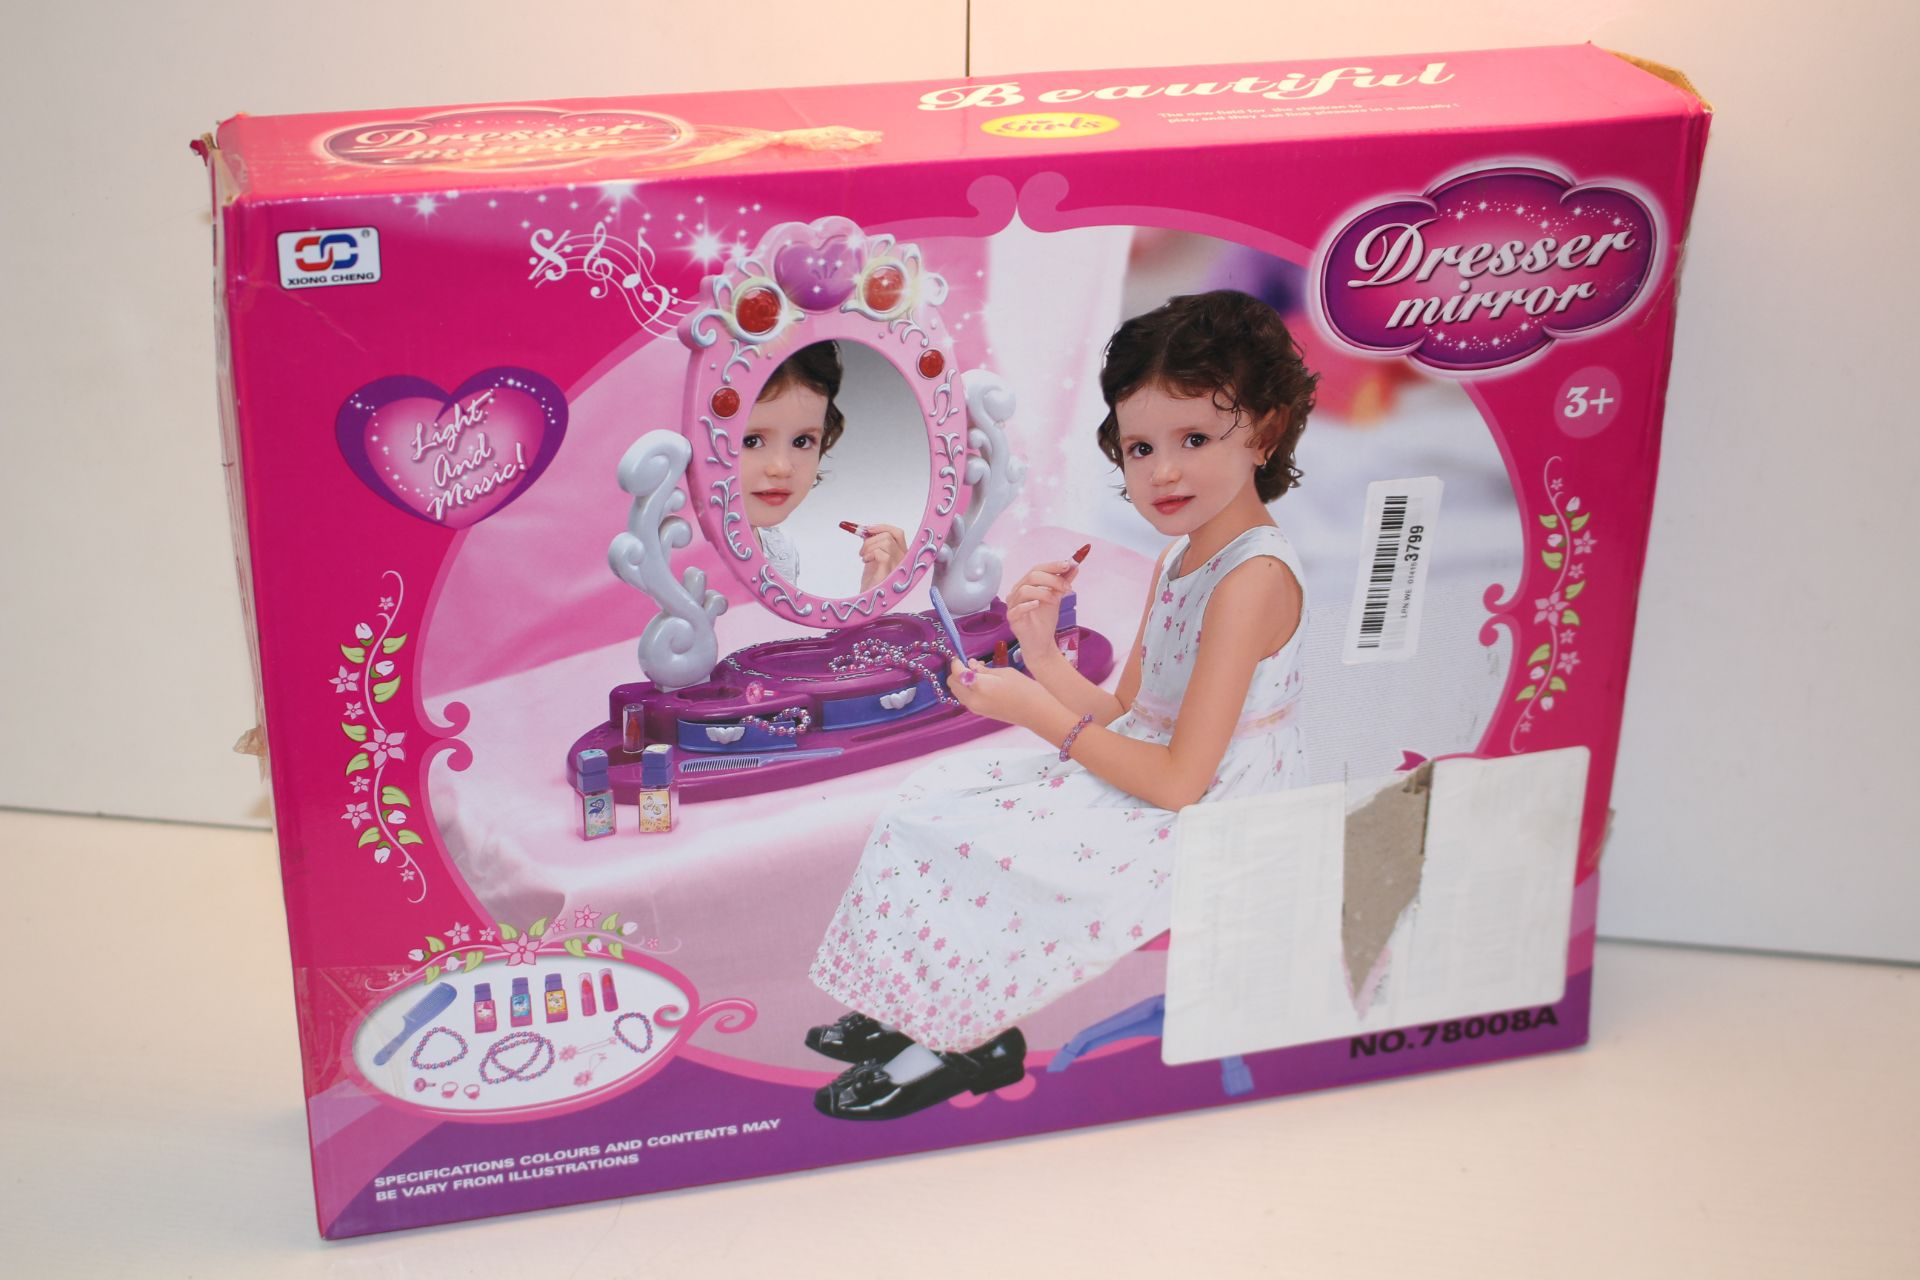 BOXED DRESSER MIRROR LIGHT AND MUSIC RRP £27.89Condition ReportAppraisal Available on Request- All